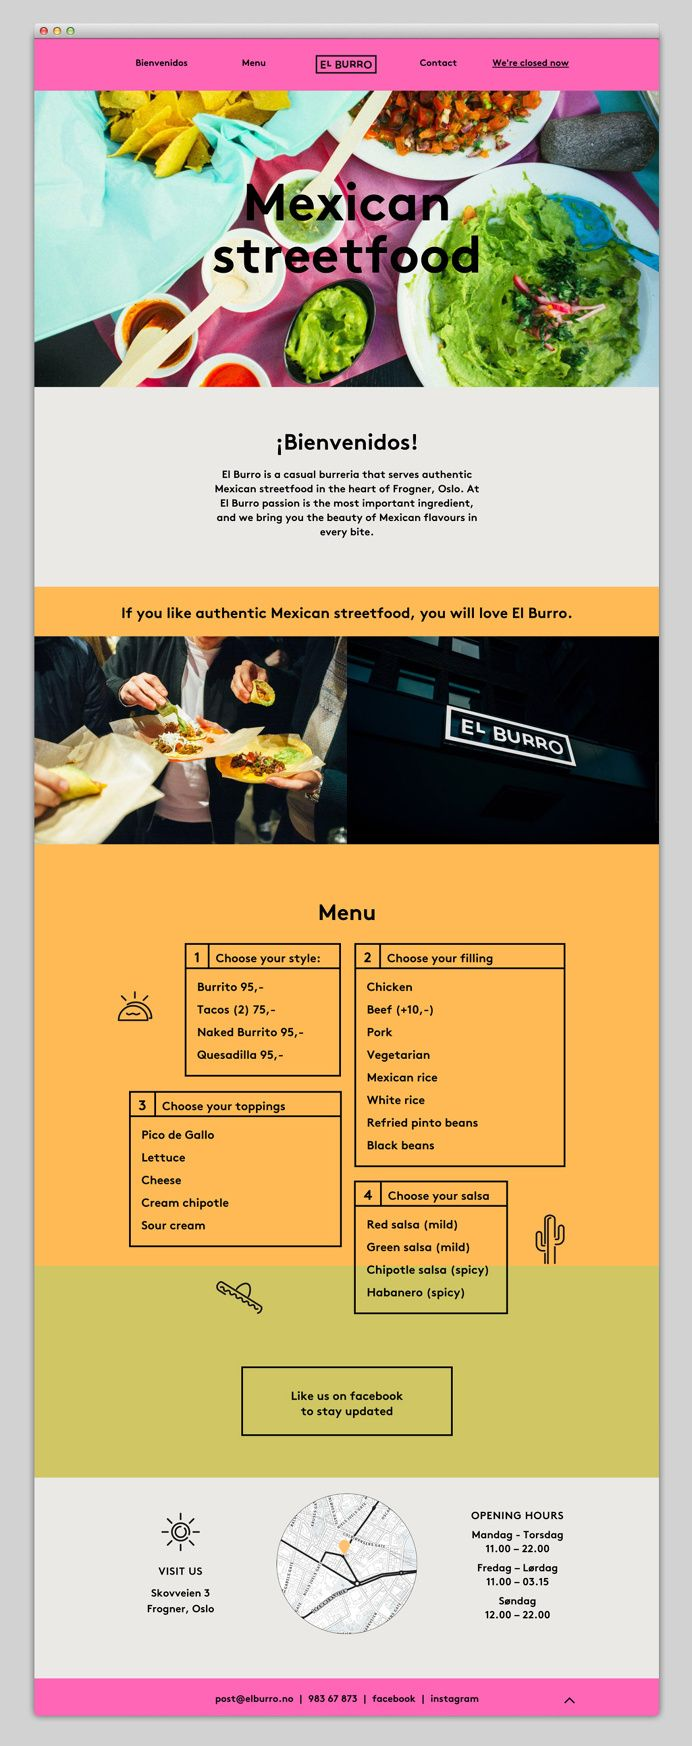 El Burro Restaurant - Web Design - Website, UI, Interaction Design, Menu, Streetfood, Minimal, Graphic, Bright Colors, Bright Photos, Images,